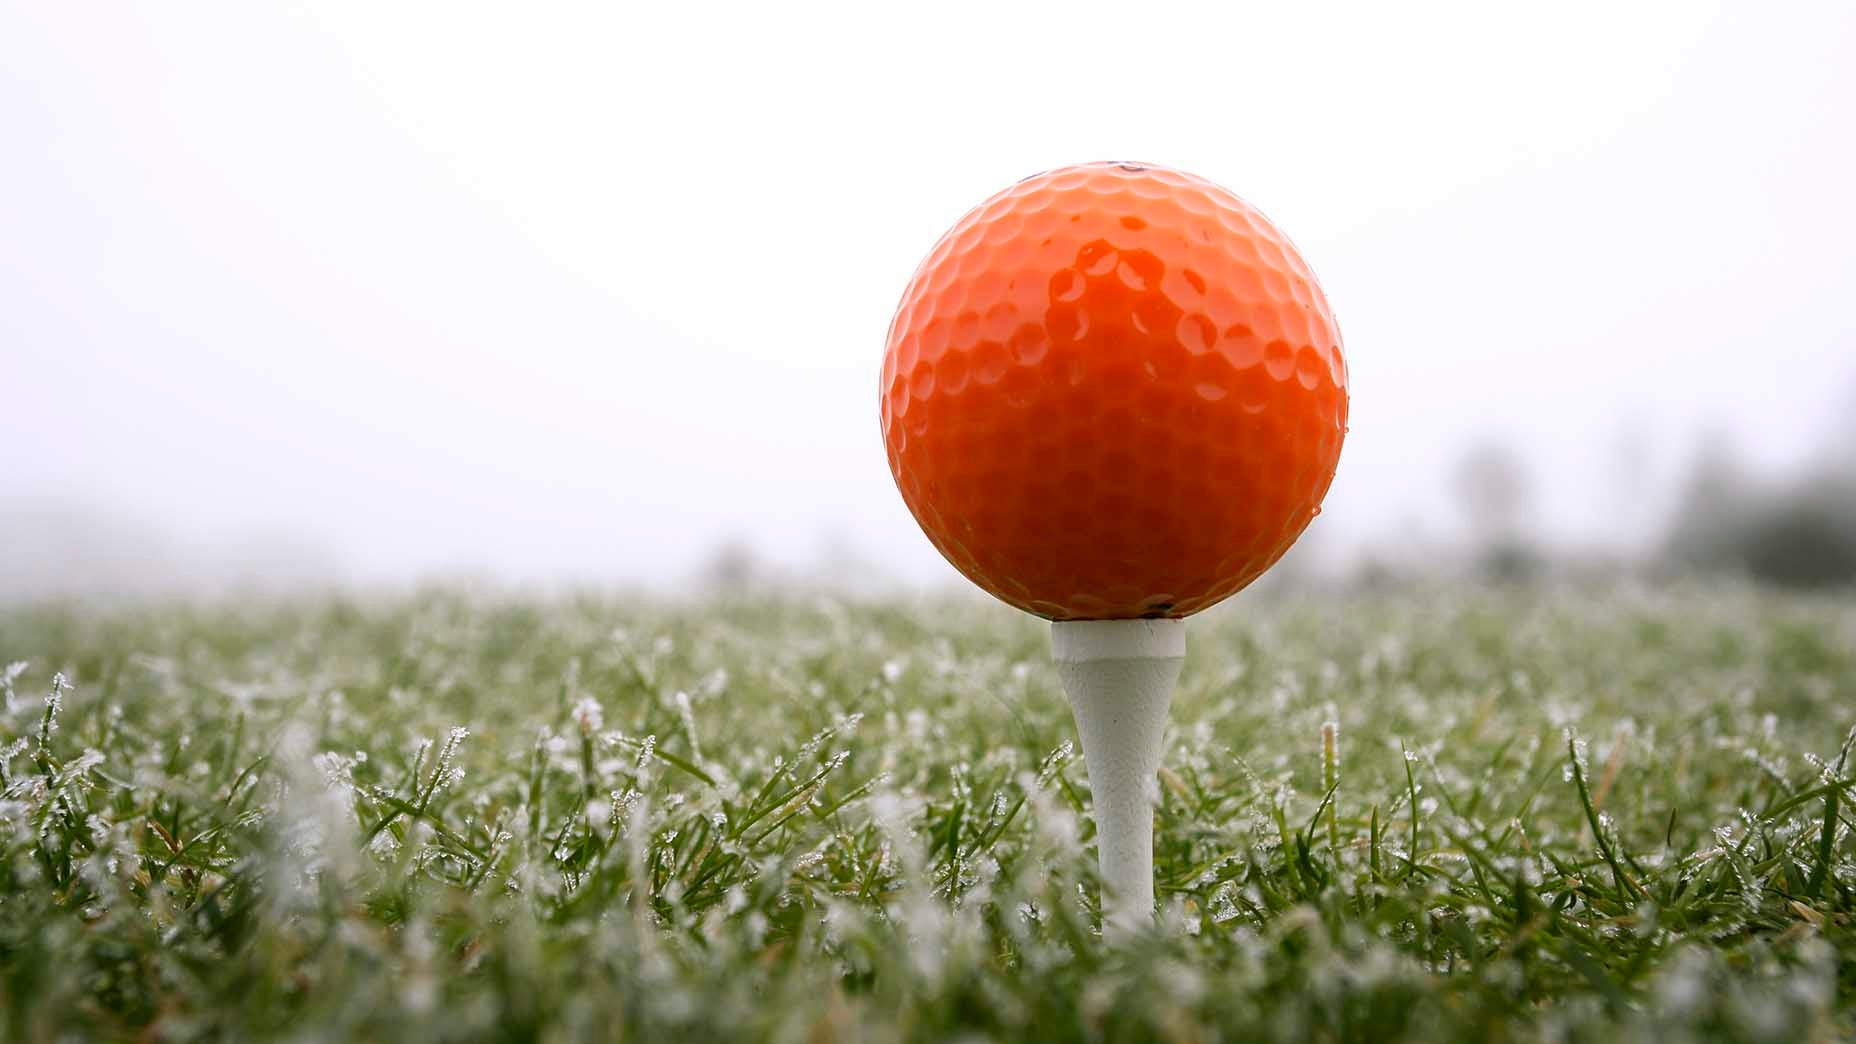 How to play golf in cold weather, according to low handicaps